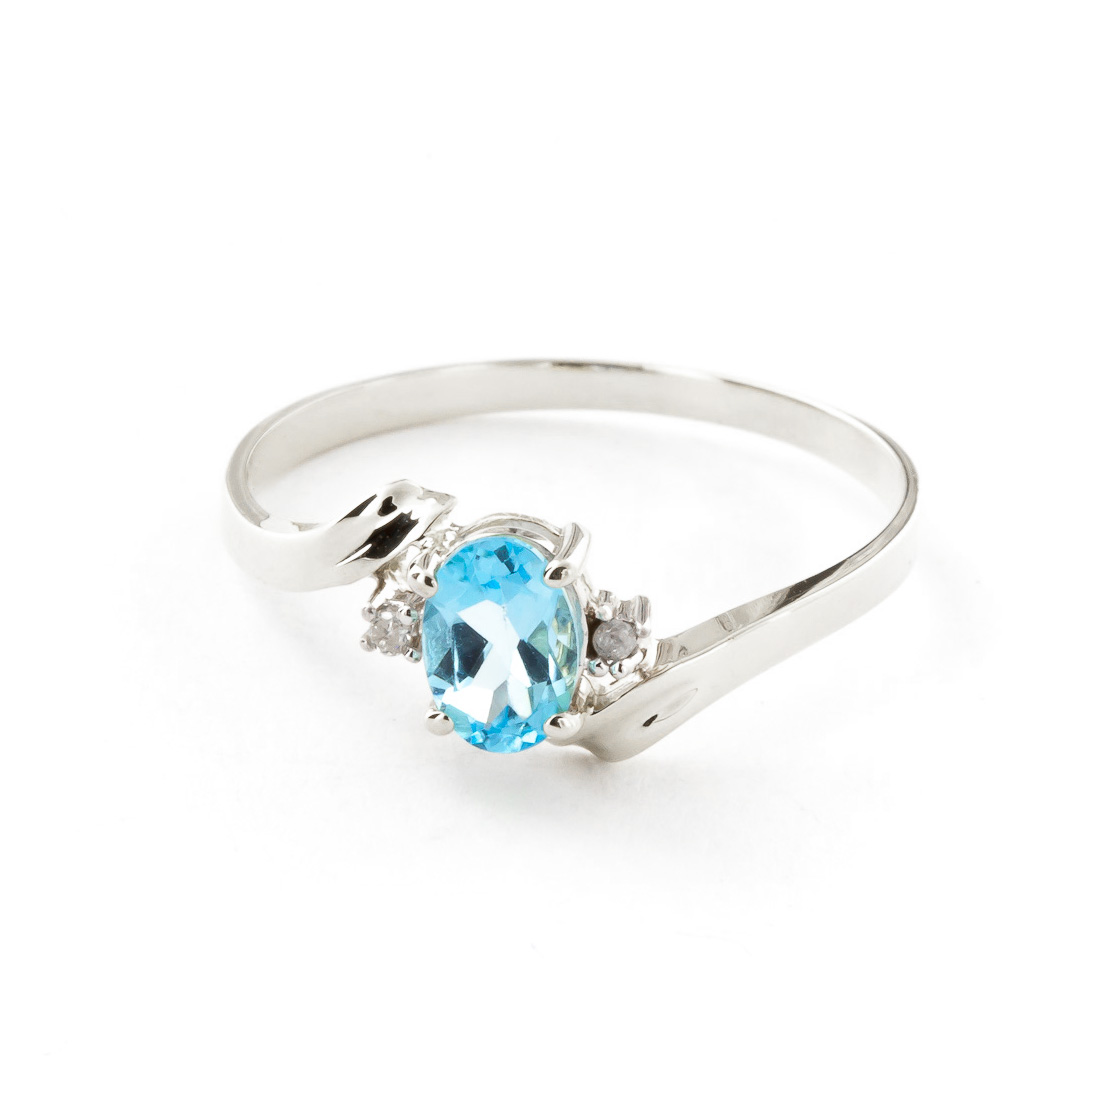 Blue Topaz & Diamond Embrace Ring in 9ct White Gold